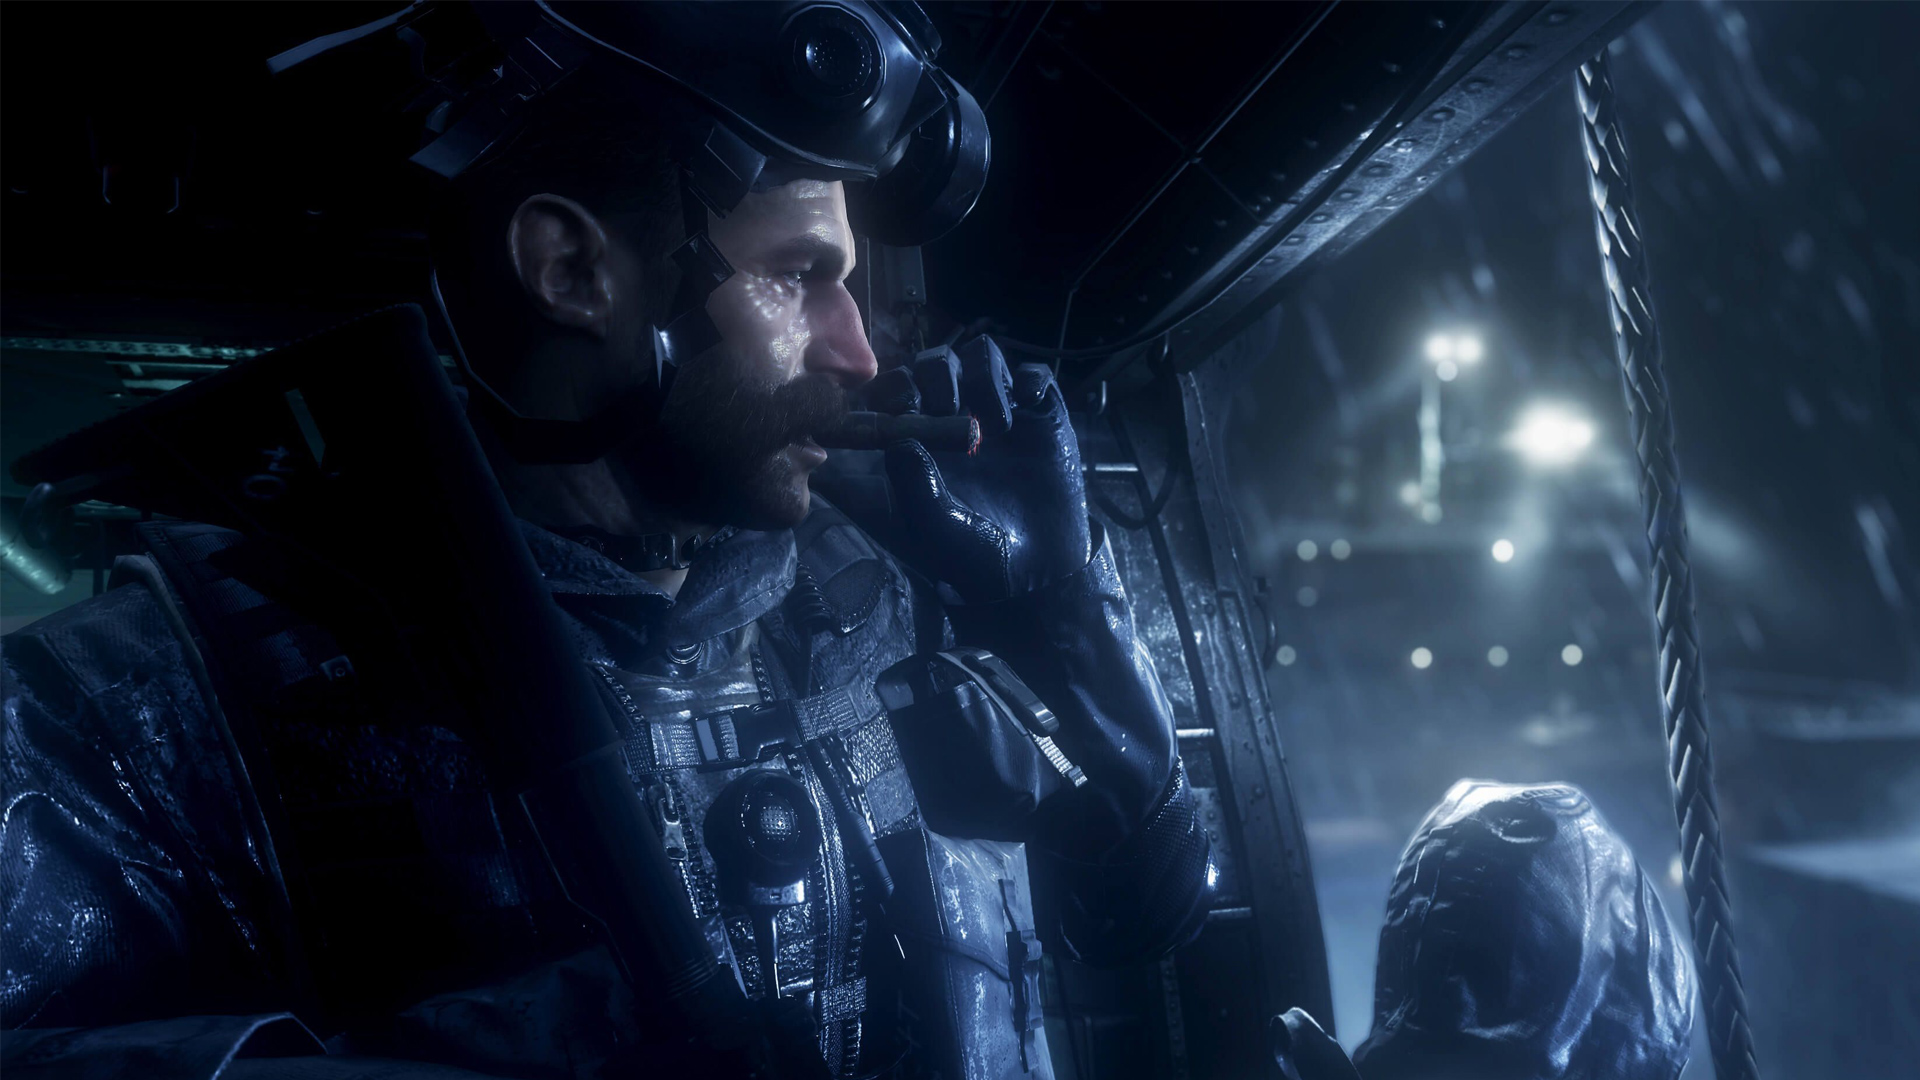 3. Call of Duty: Modern Warfare Remastered